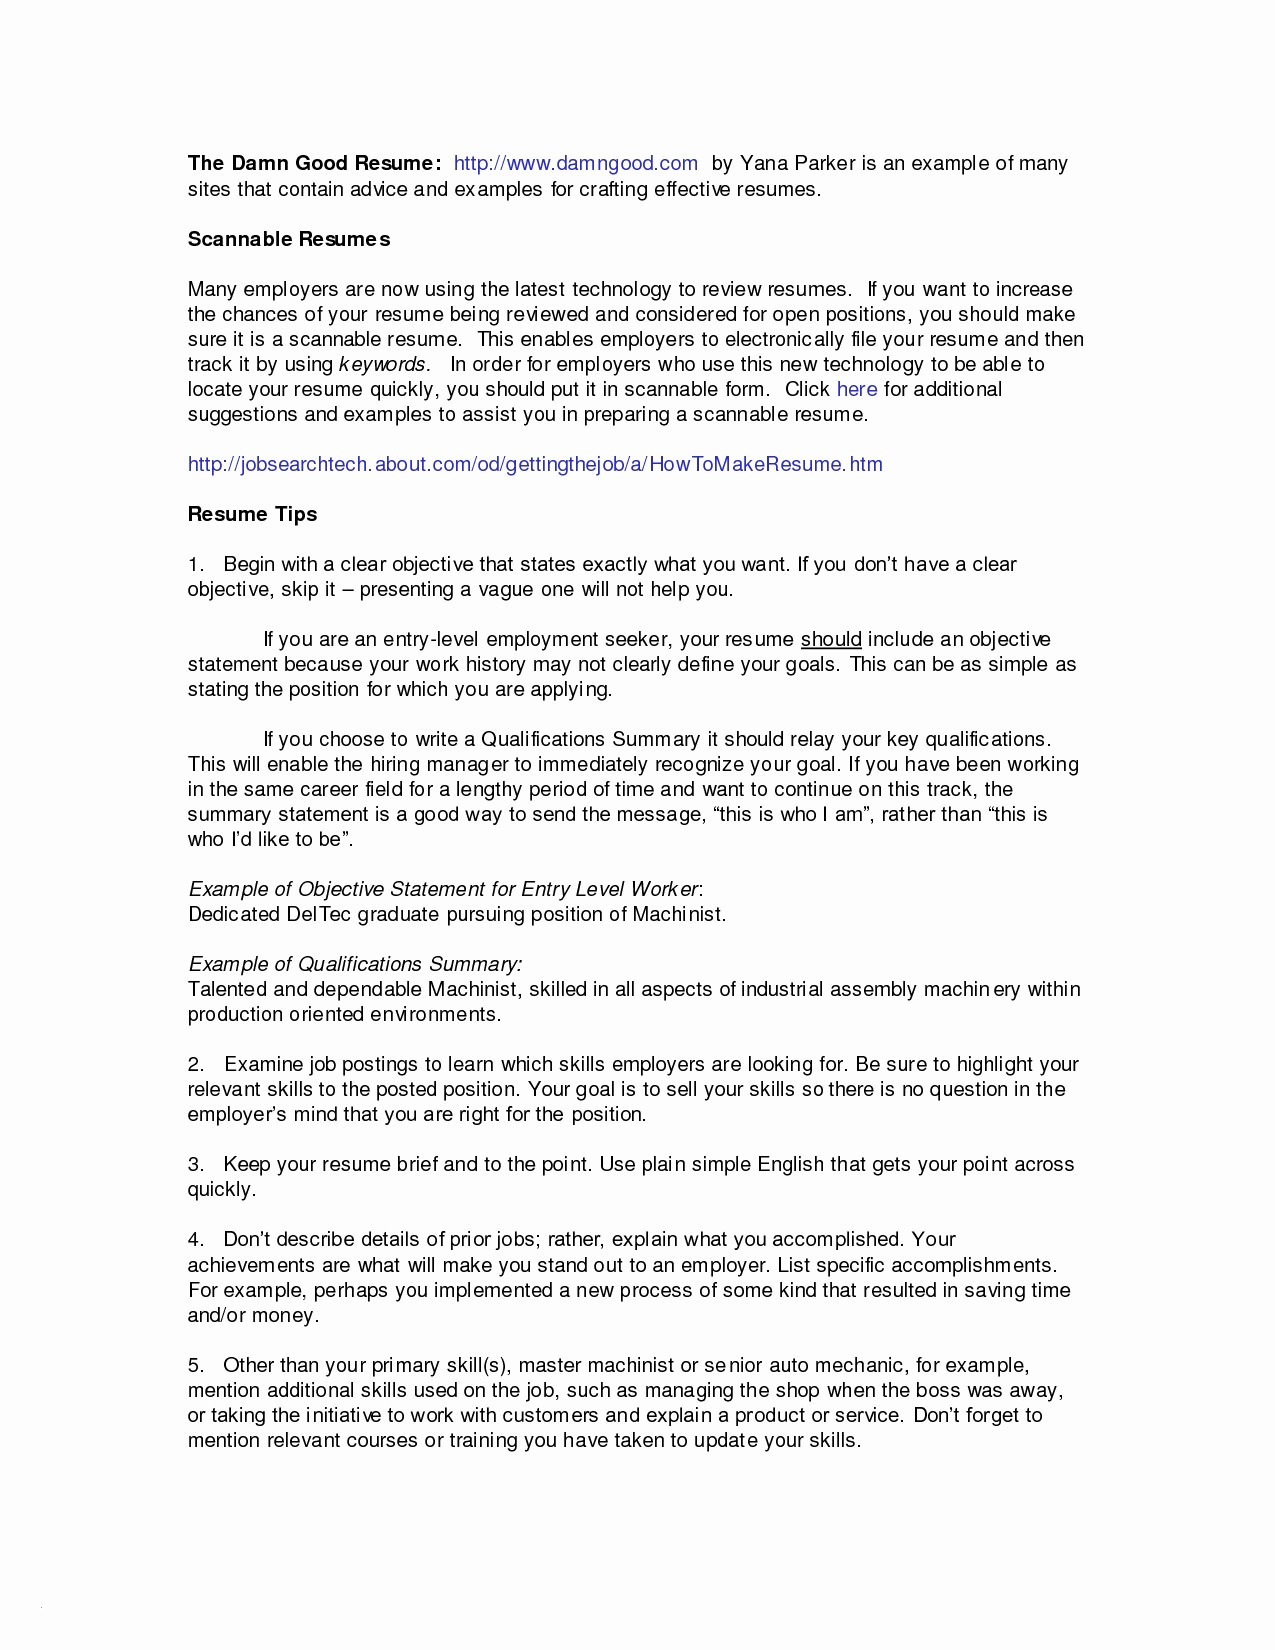 analyst resume template Collection-Data Analyst Resume Template Unique Entry Level Data Analyst Resume Lovely Data Analyst Skills Resume 12-a